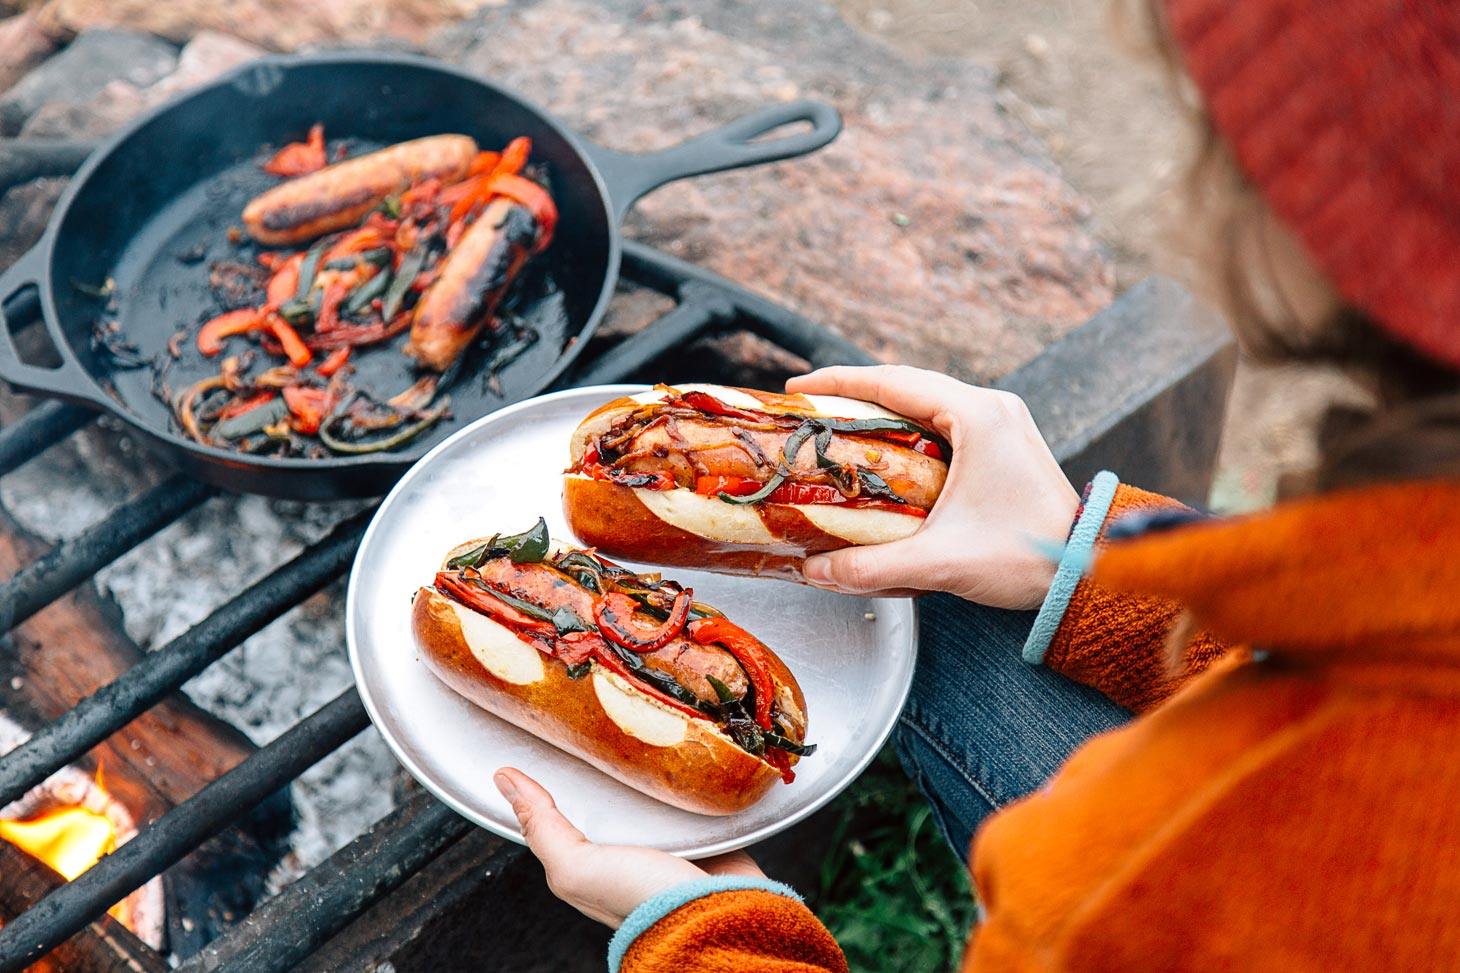 Cast Iron Brats are an easy campfire meal. Topped with sweet & spicy peppers and onions, this is a great, cheap dinner while camping.